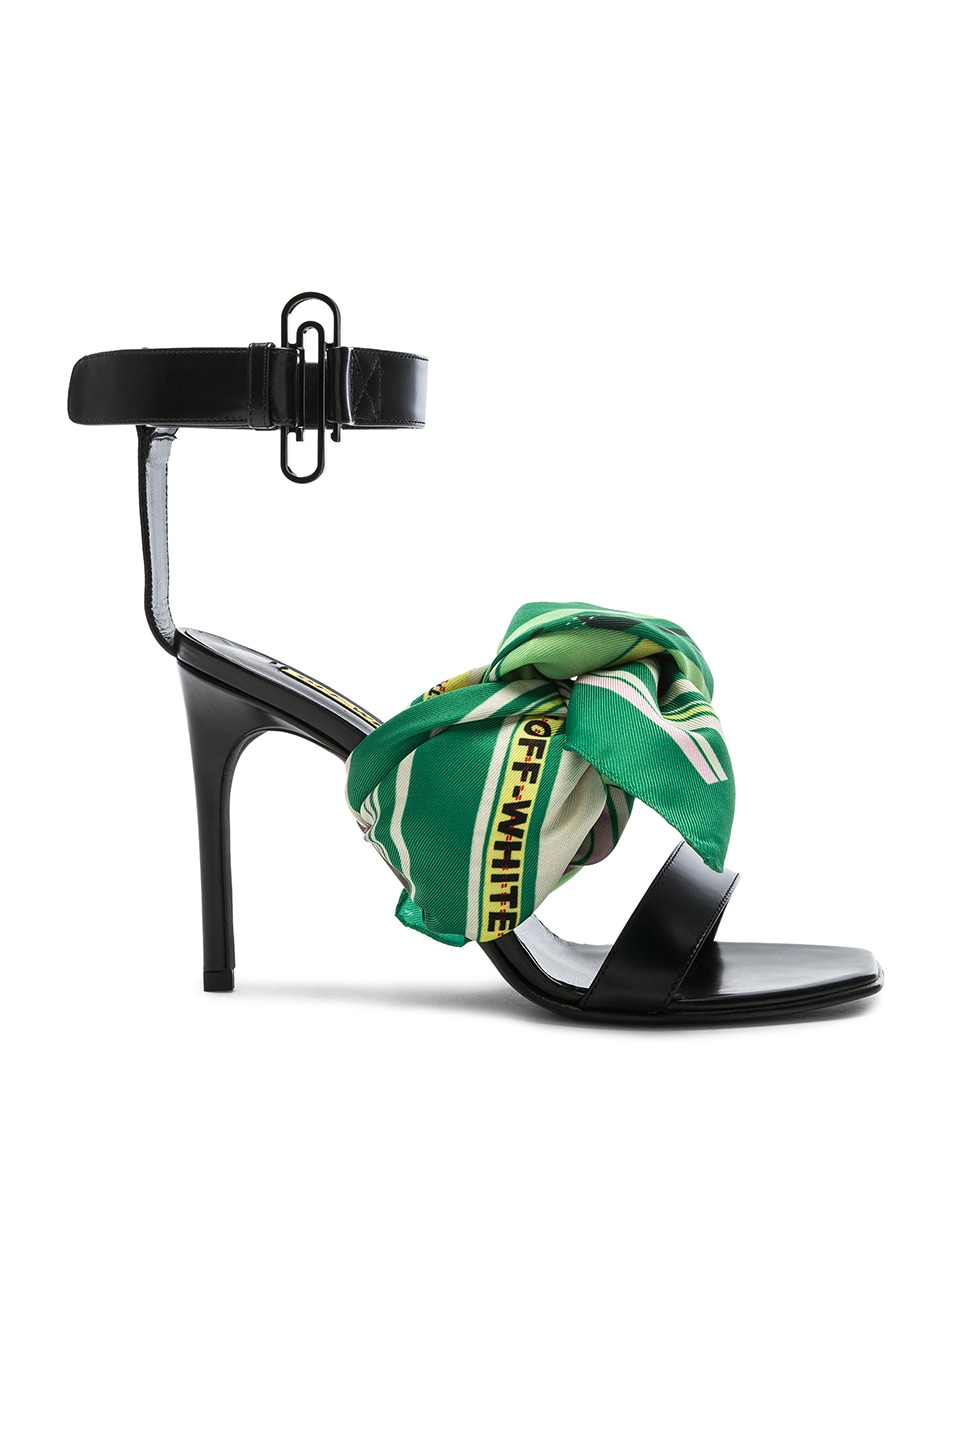 Image 1 of OFF-WHITE Scarf Sandal in Black Multicolor